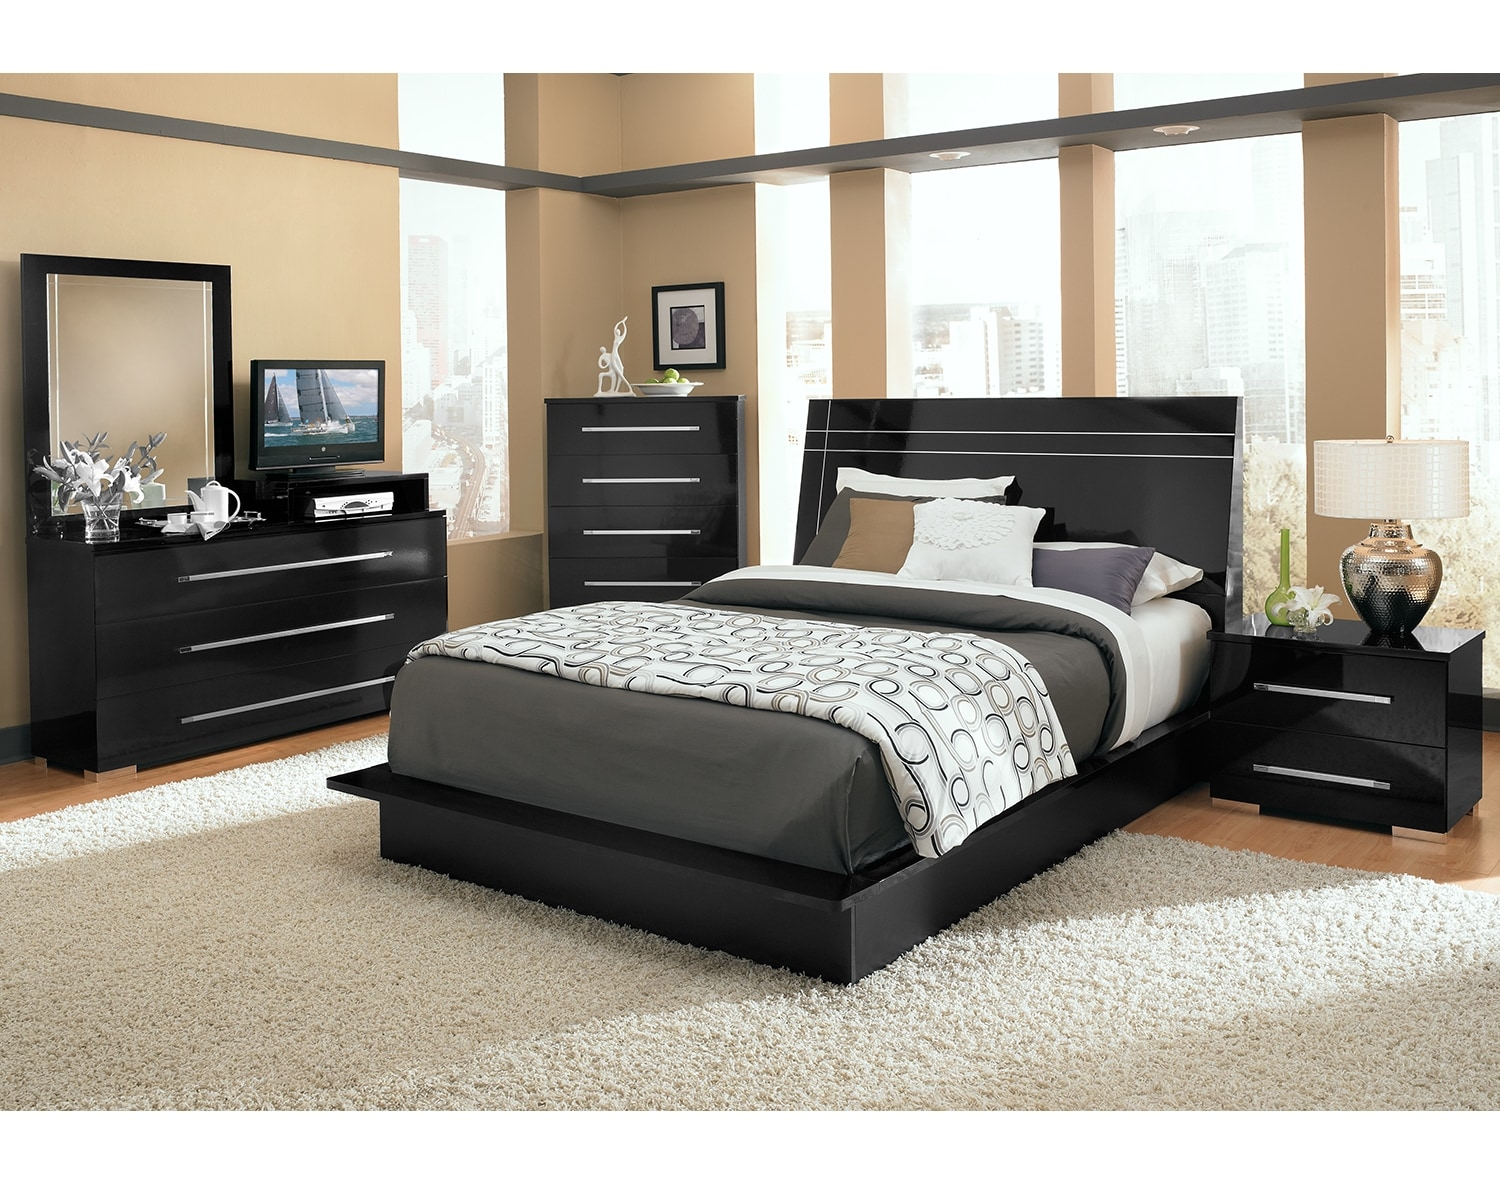 The Dimora Panel Collection Black Value City Furniture and